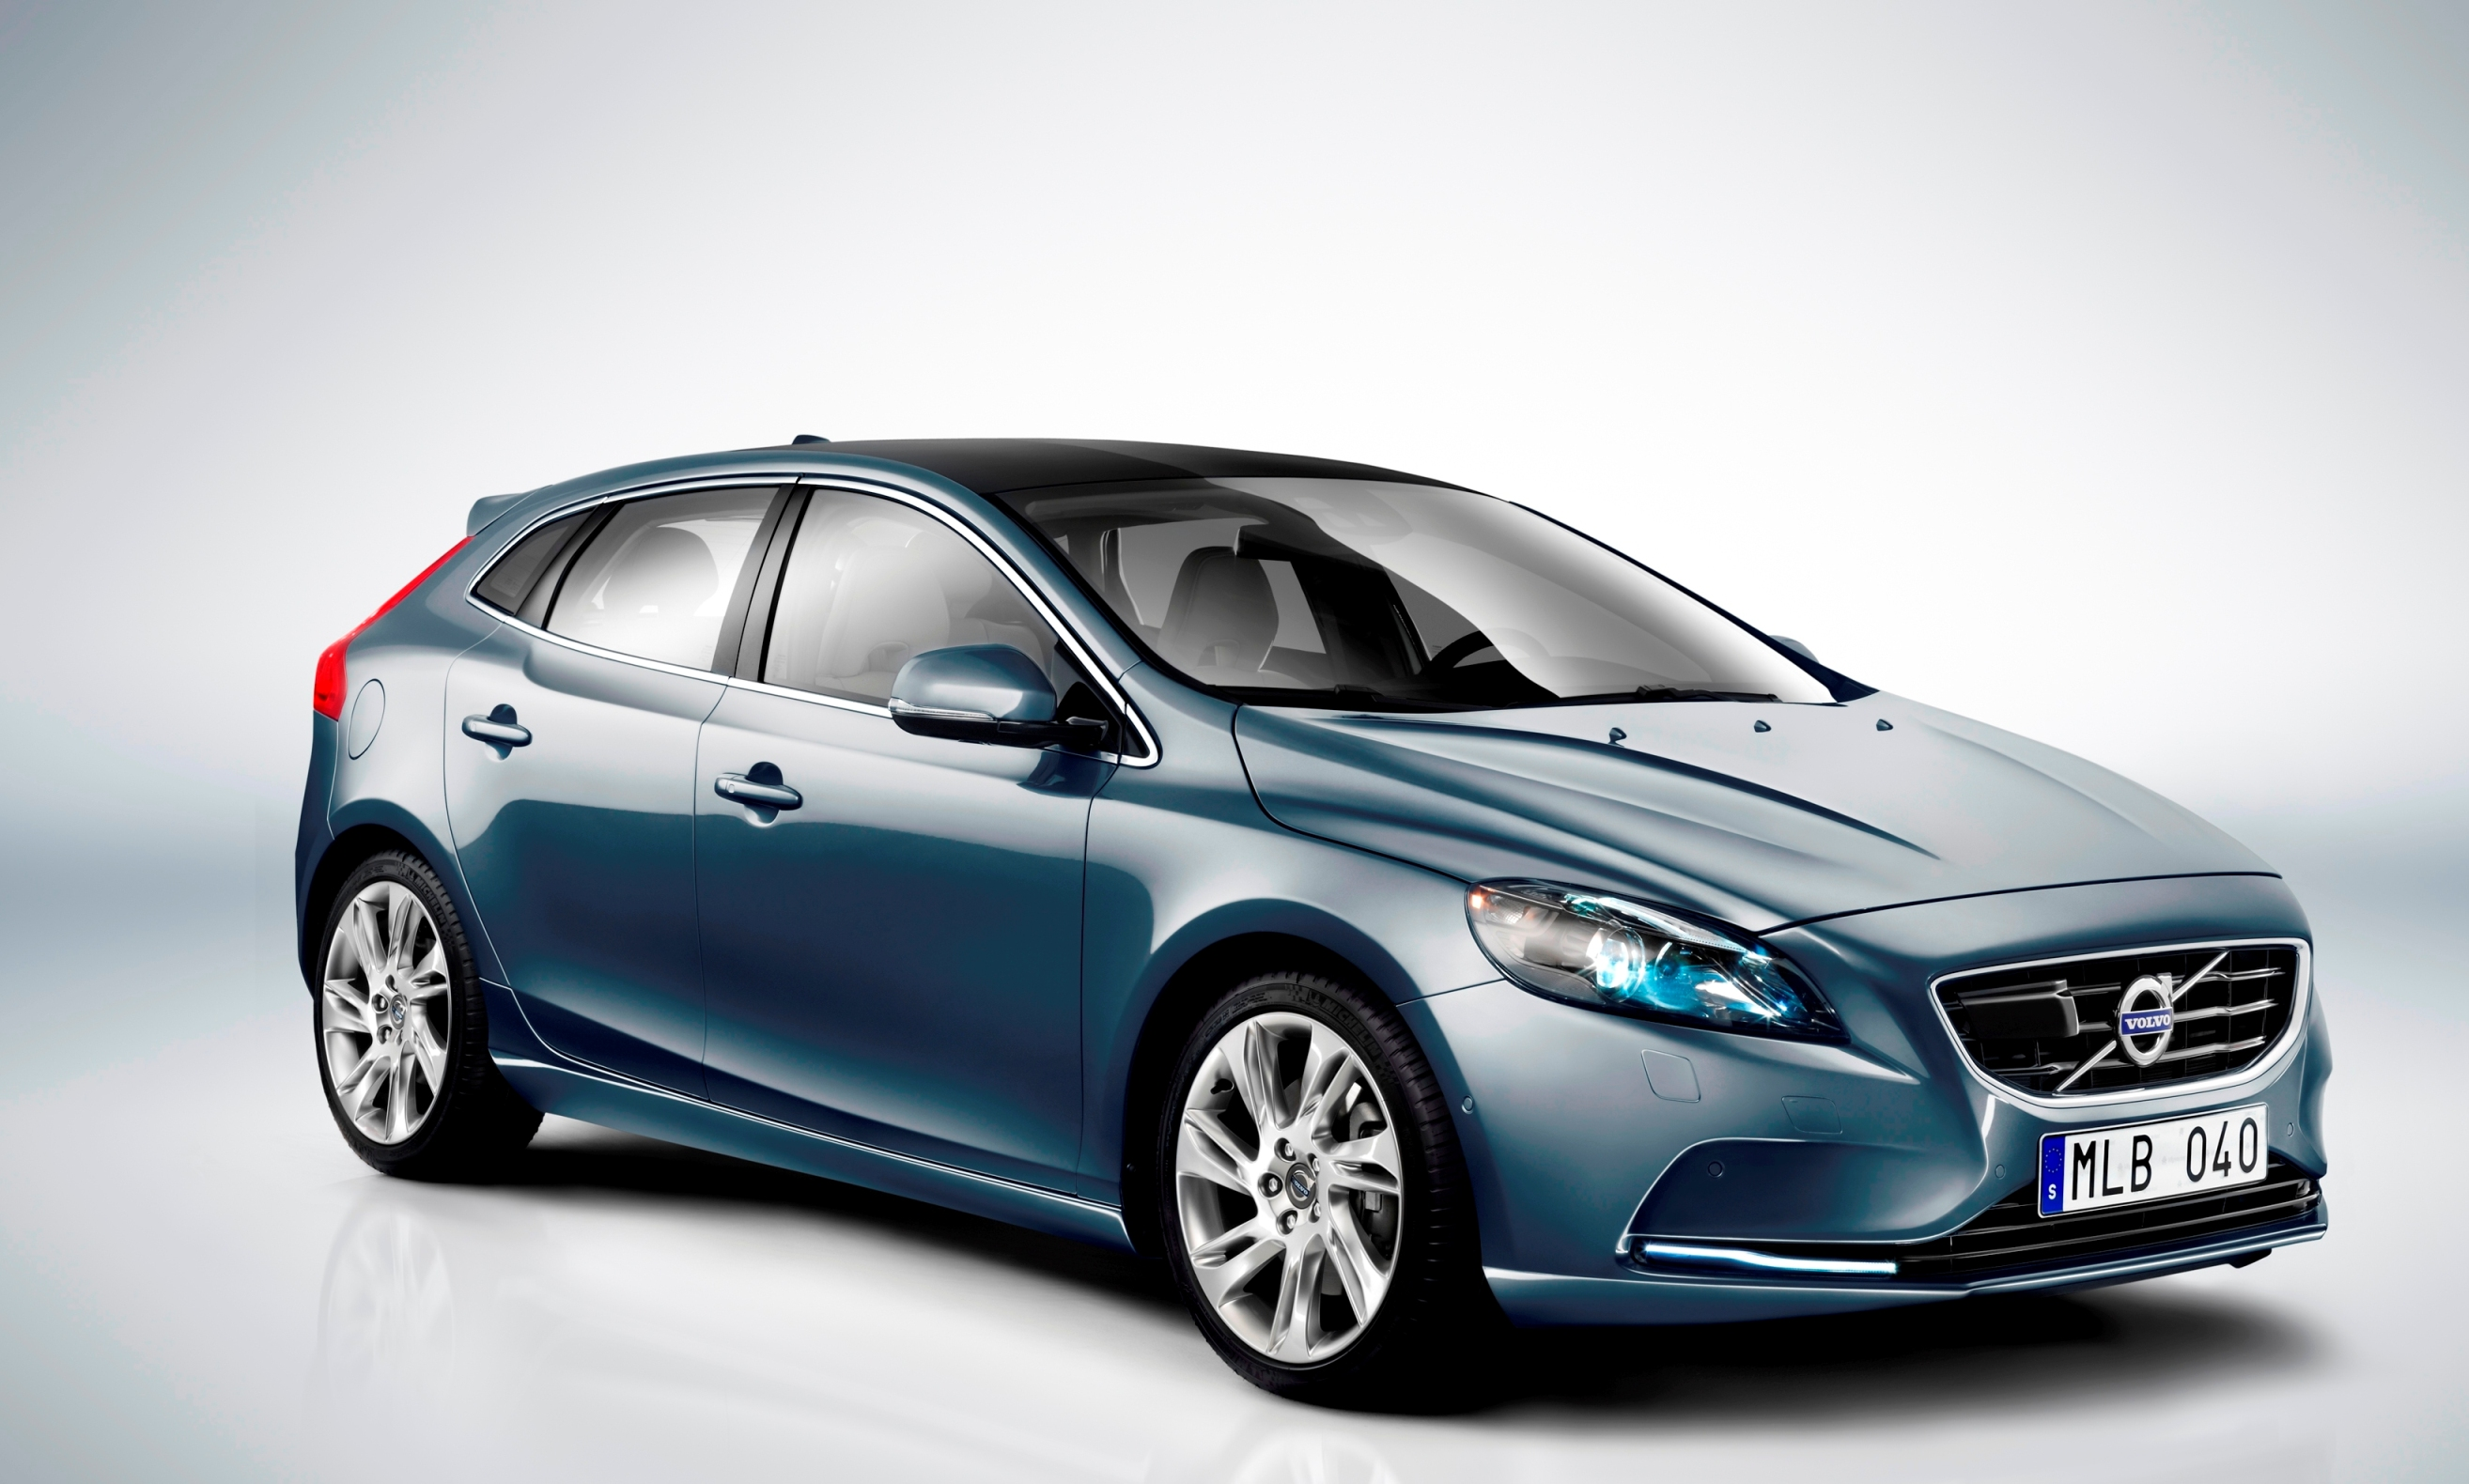 volvo v40 d2 technical details history photos on better parts ltd. Black Bedroom Furniture Sets. Home Design Ideas